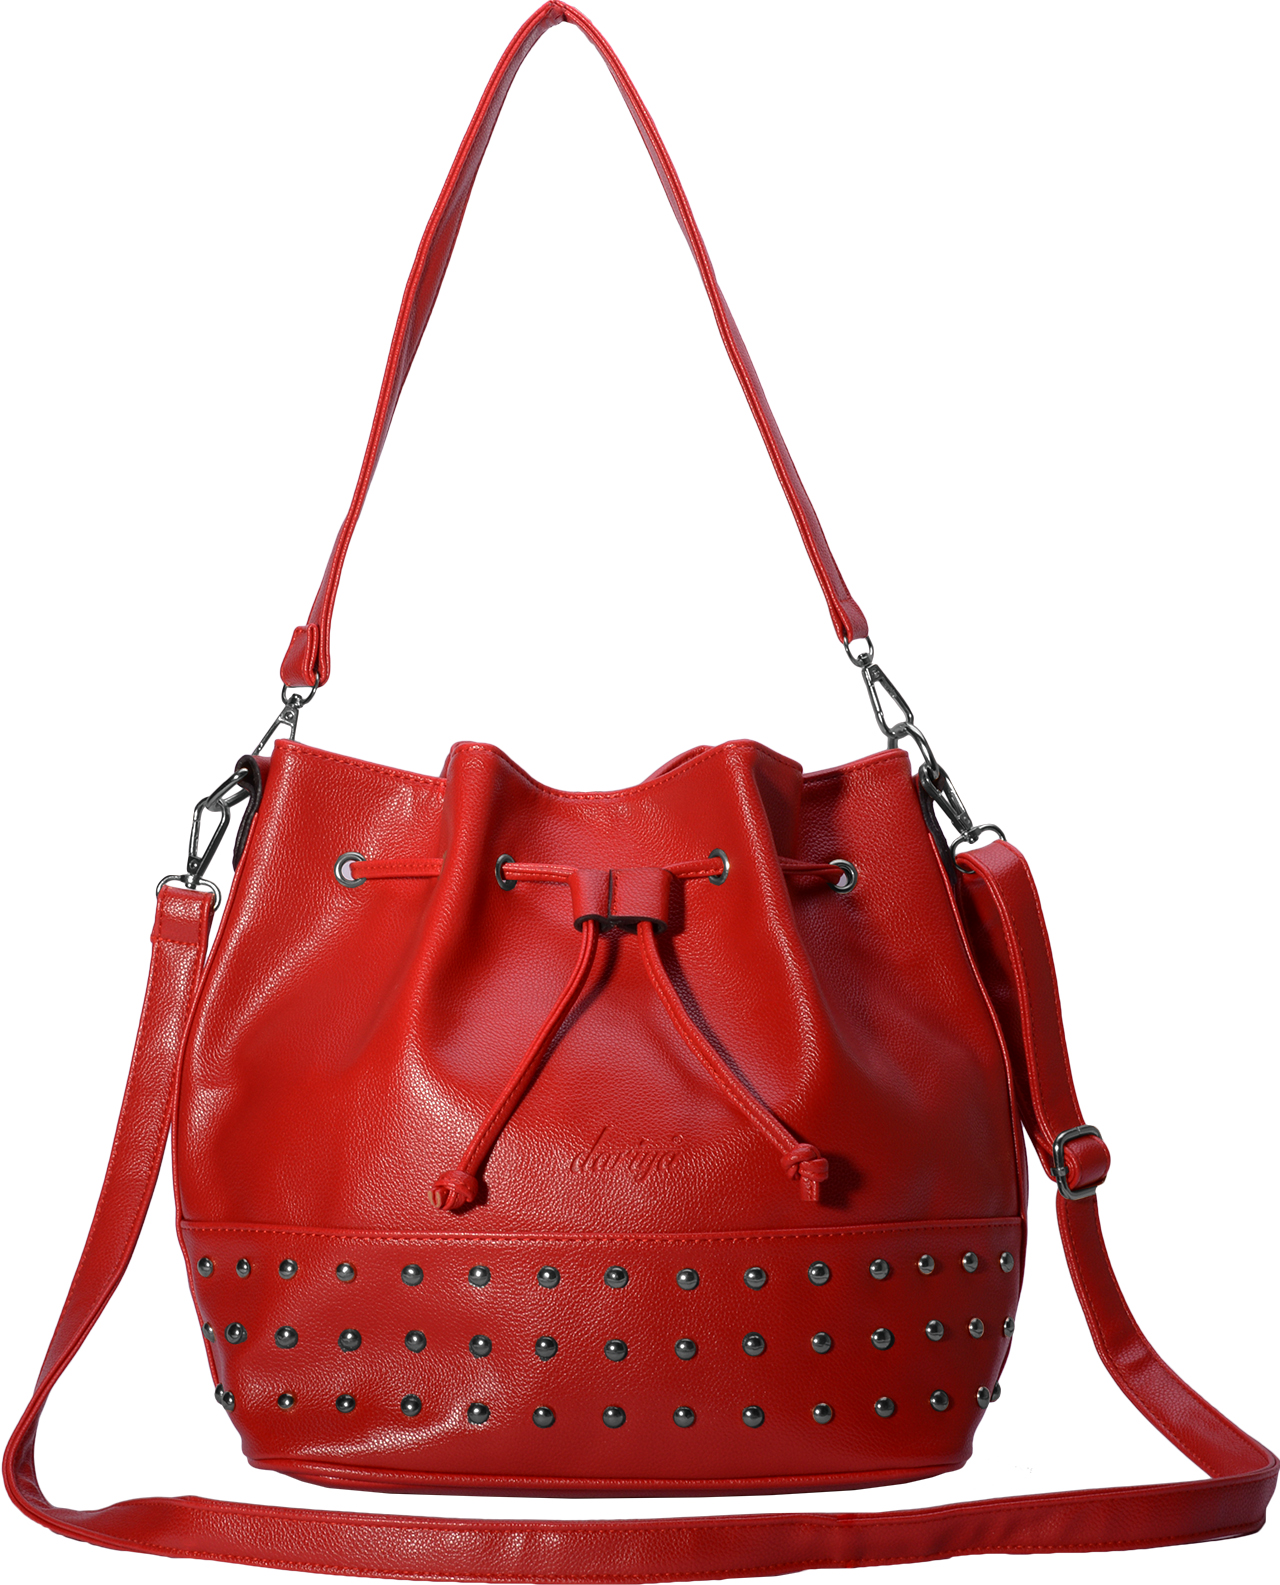 Dariya Bags - Bucket Bag